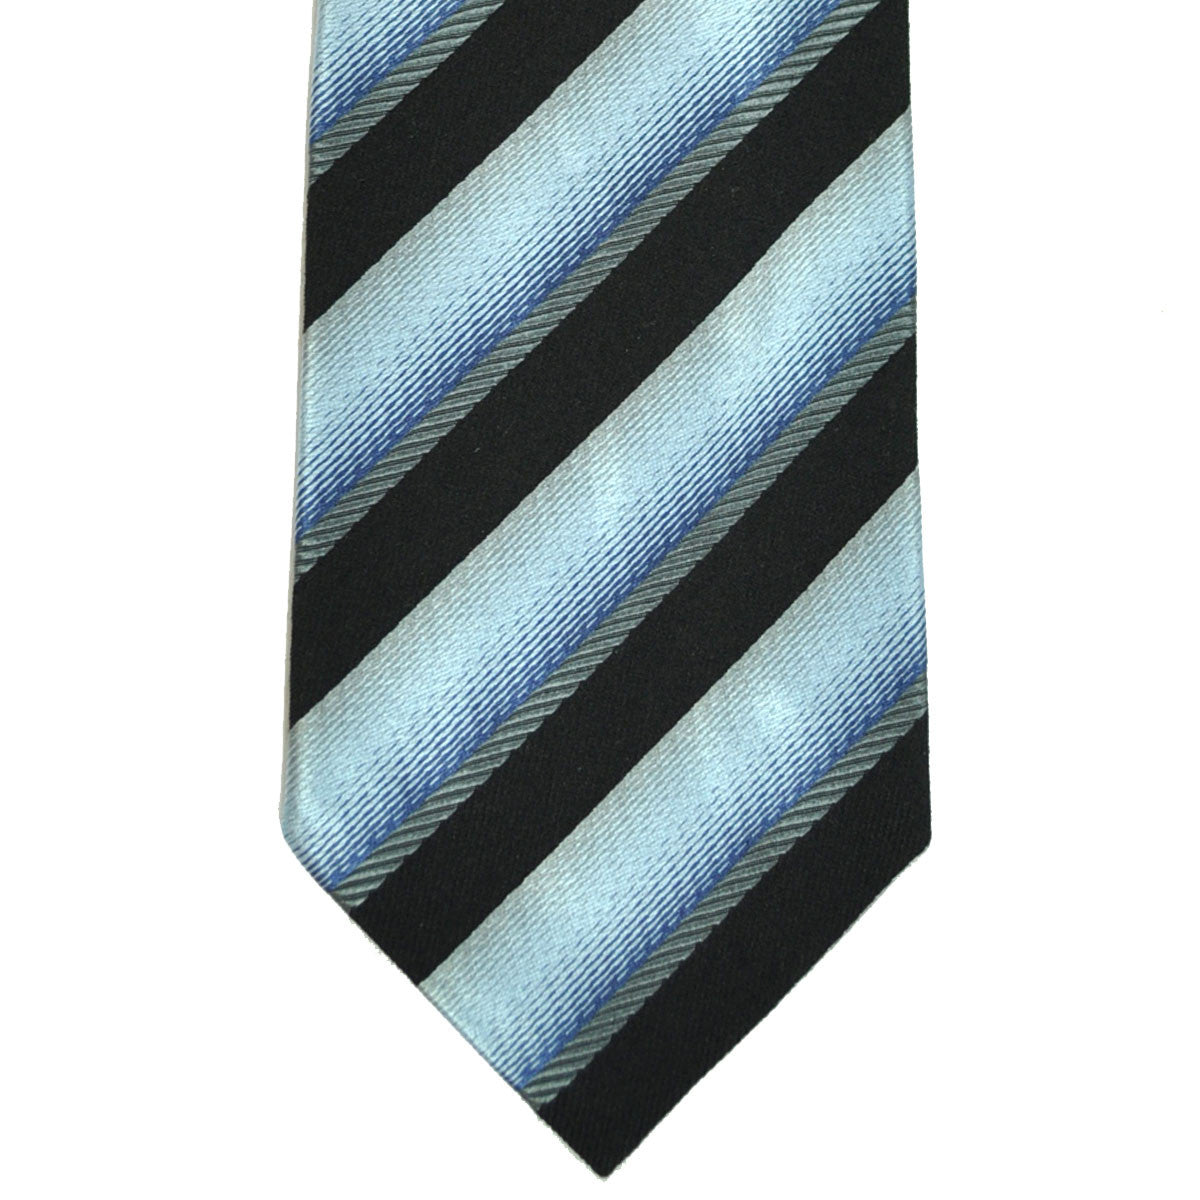 Christian Lacroix Necktie Blue Stripes